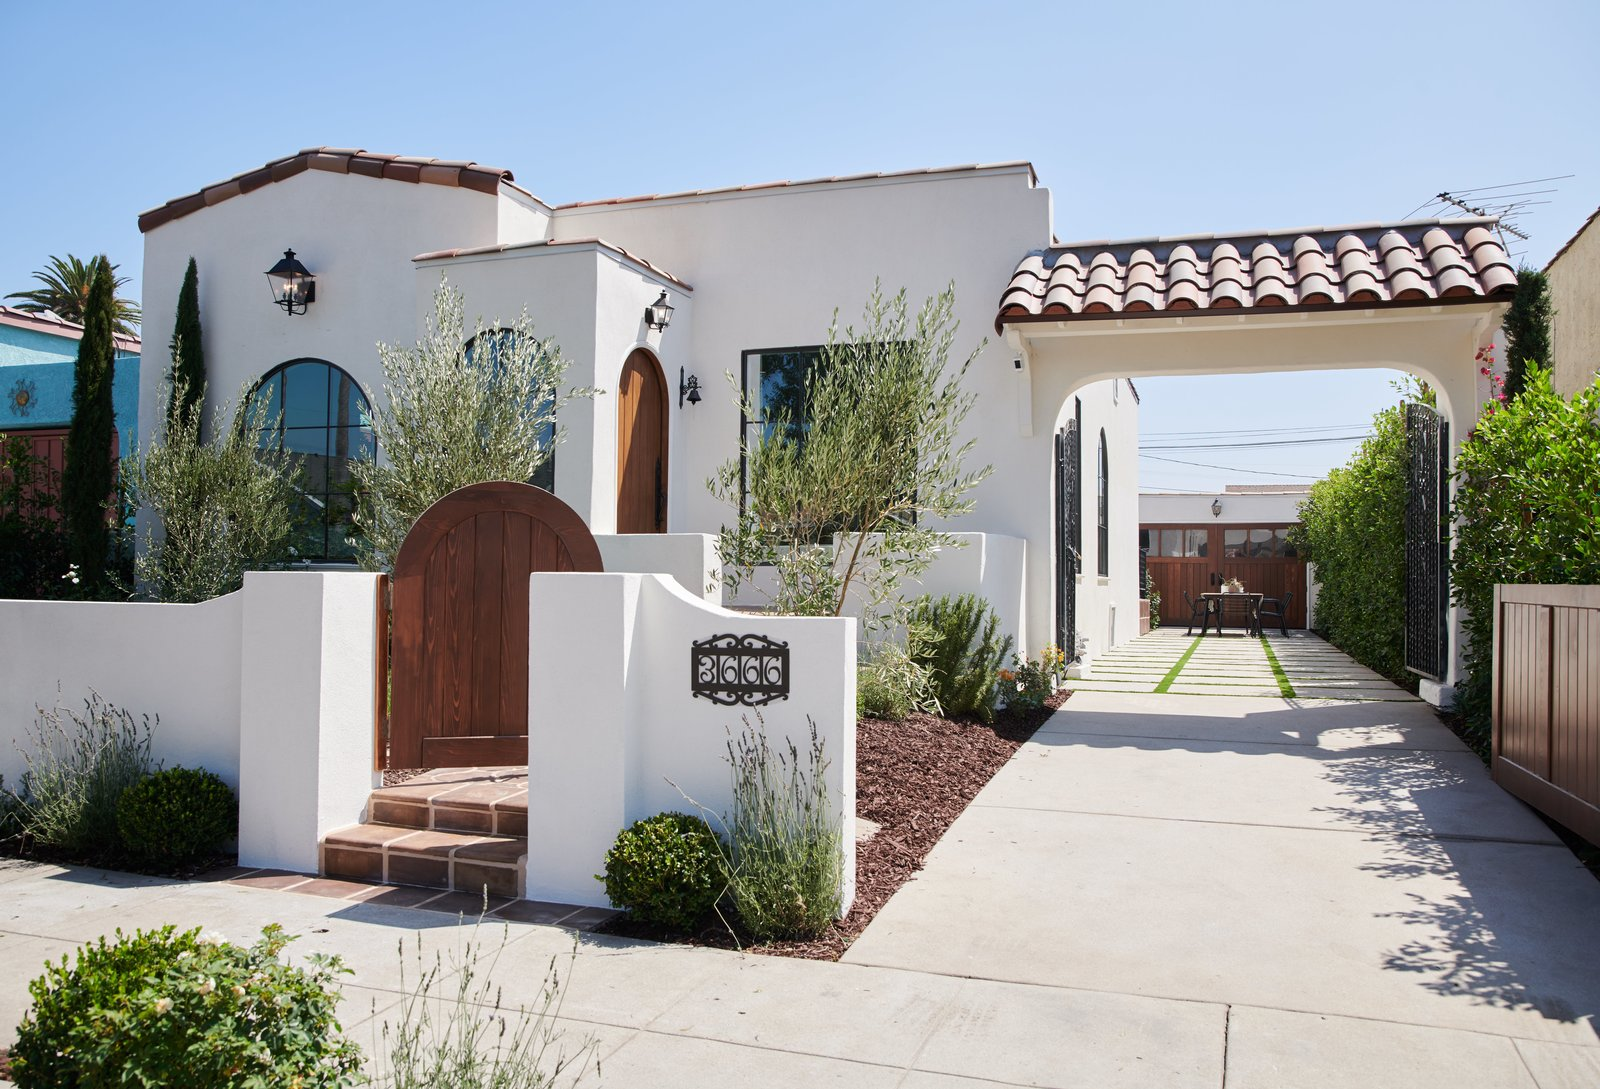 the renovated exterior features fresh landscaping and hardscaping along with new windows and doors